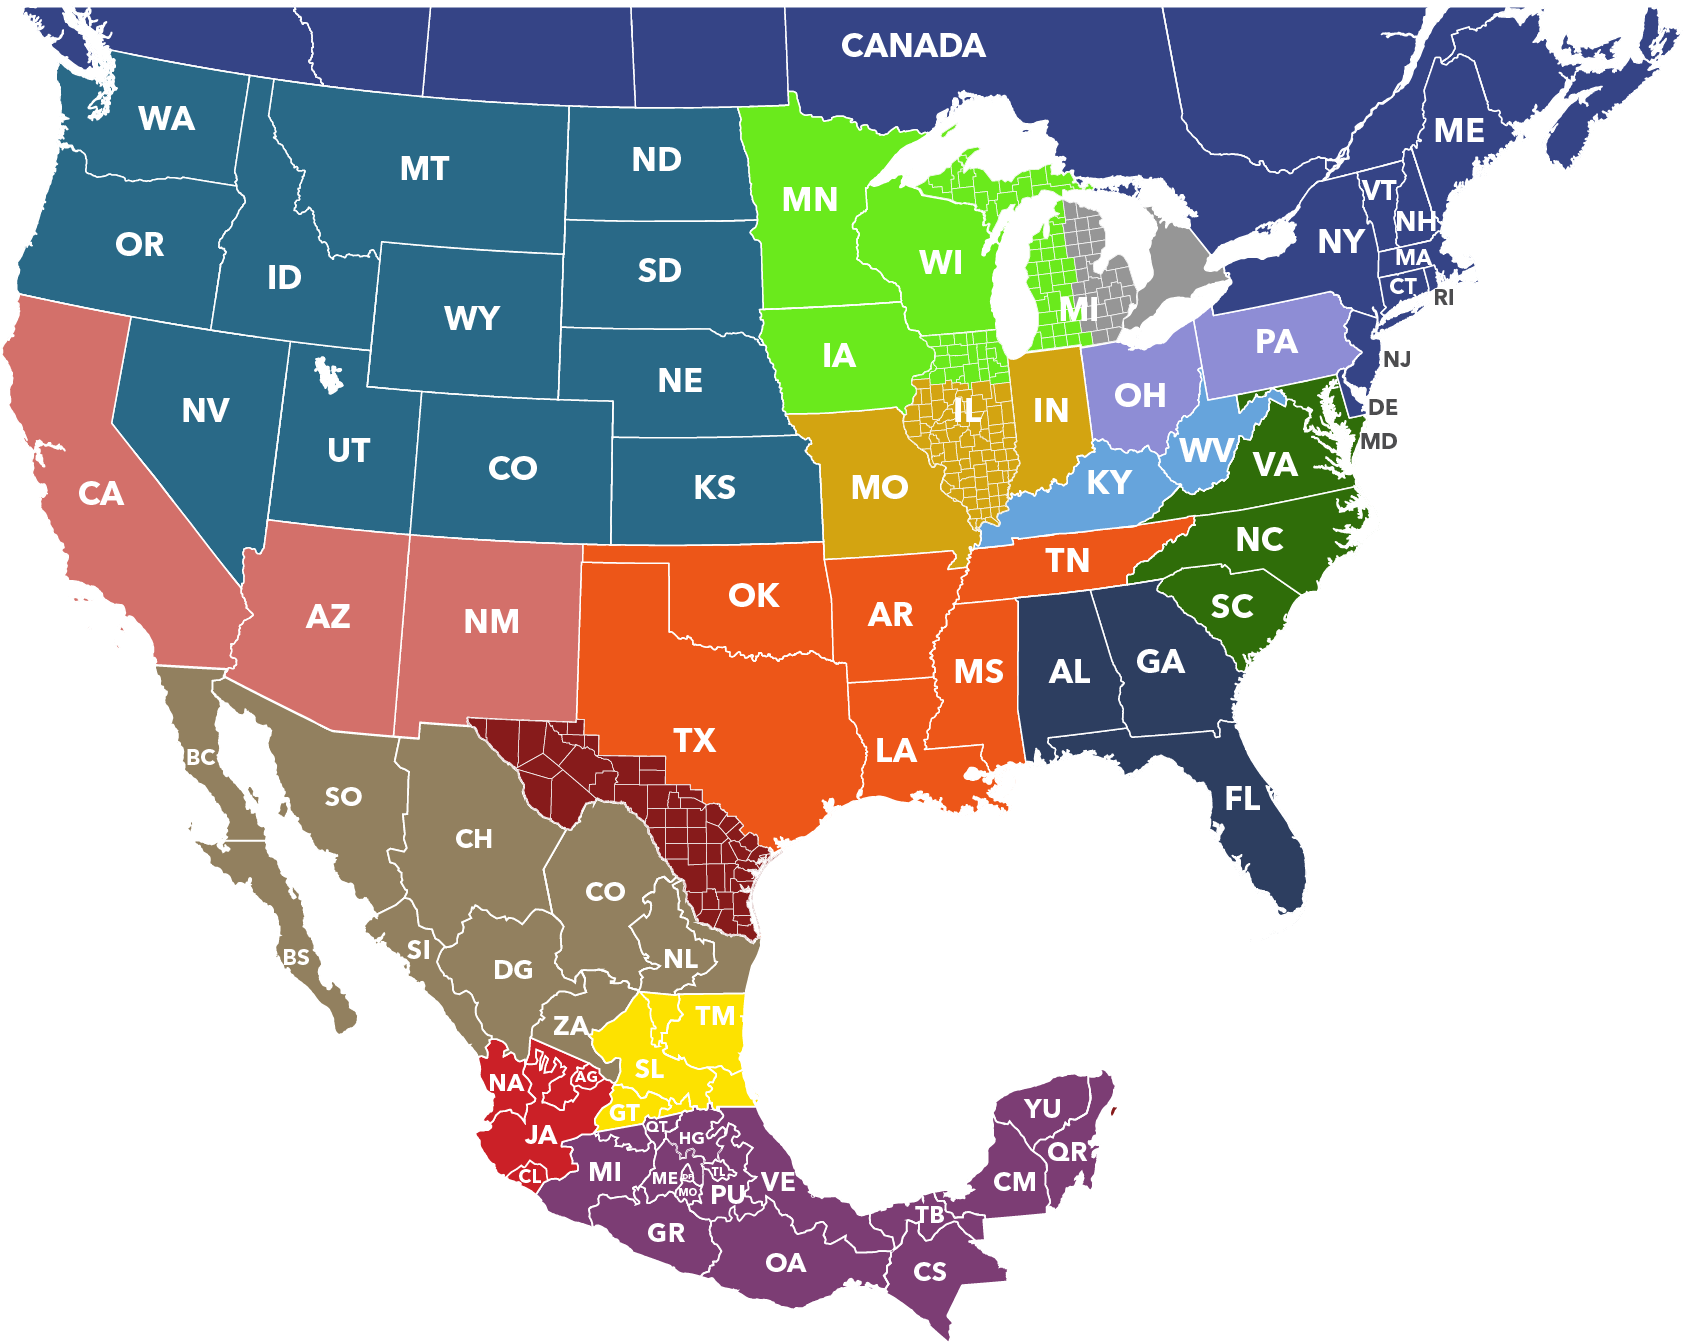 MAP OF REGIONAL PACKAGING SPECIALISTS IN NORTH AMERICA